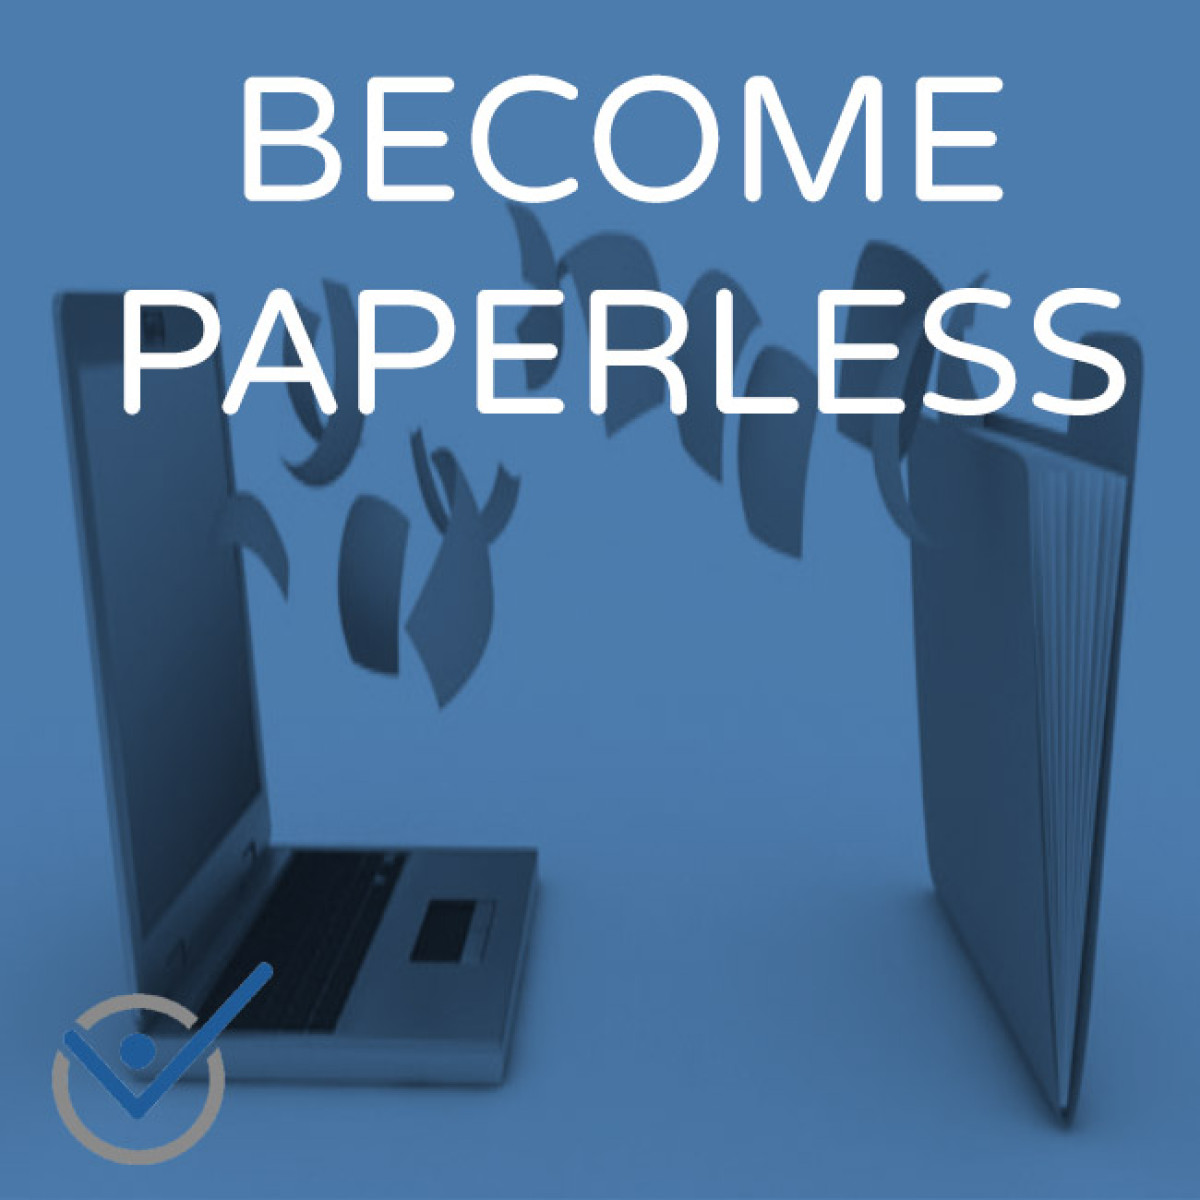 Paperless Office become paperless